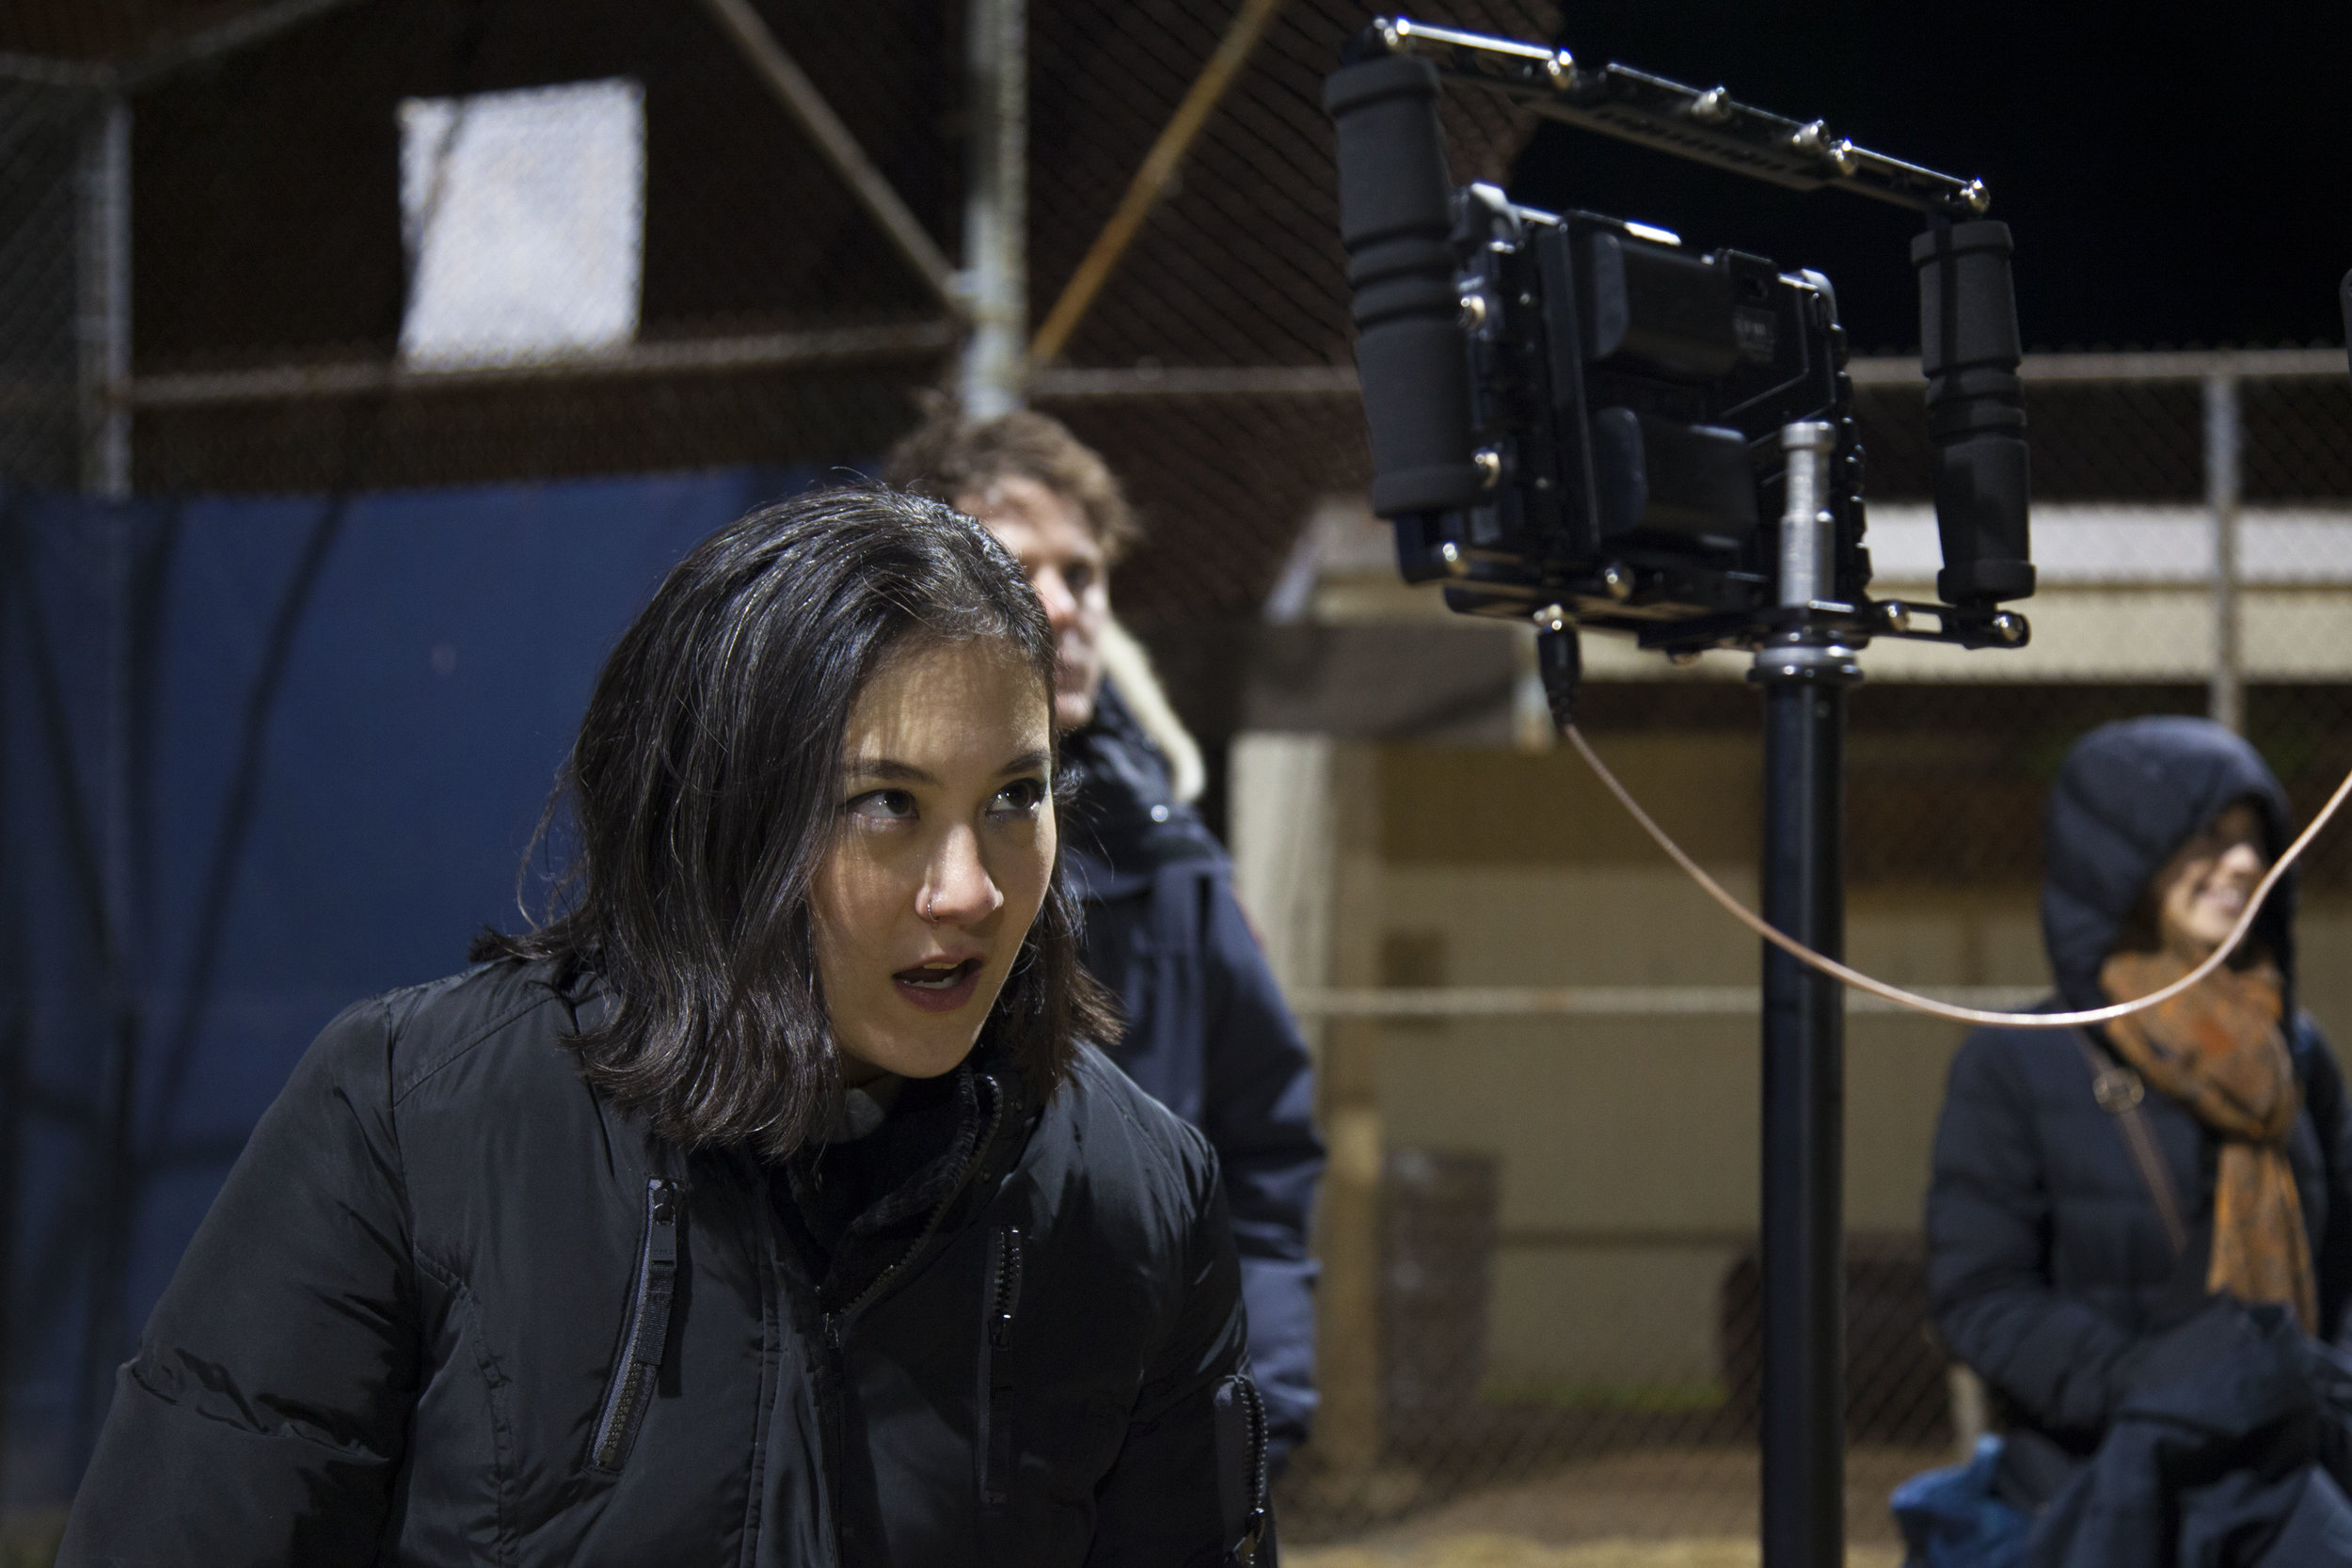 A very cold director rallying her team.